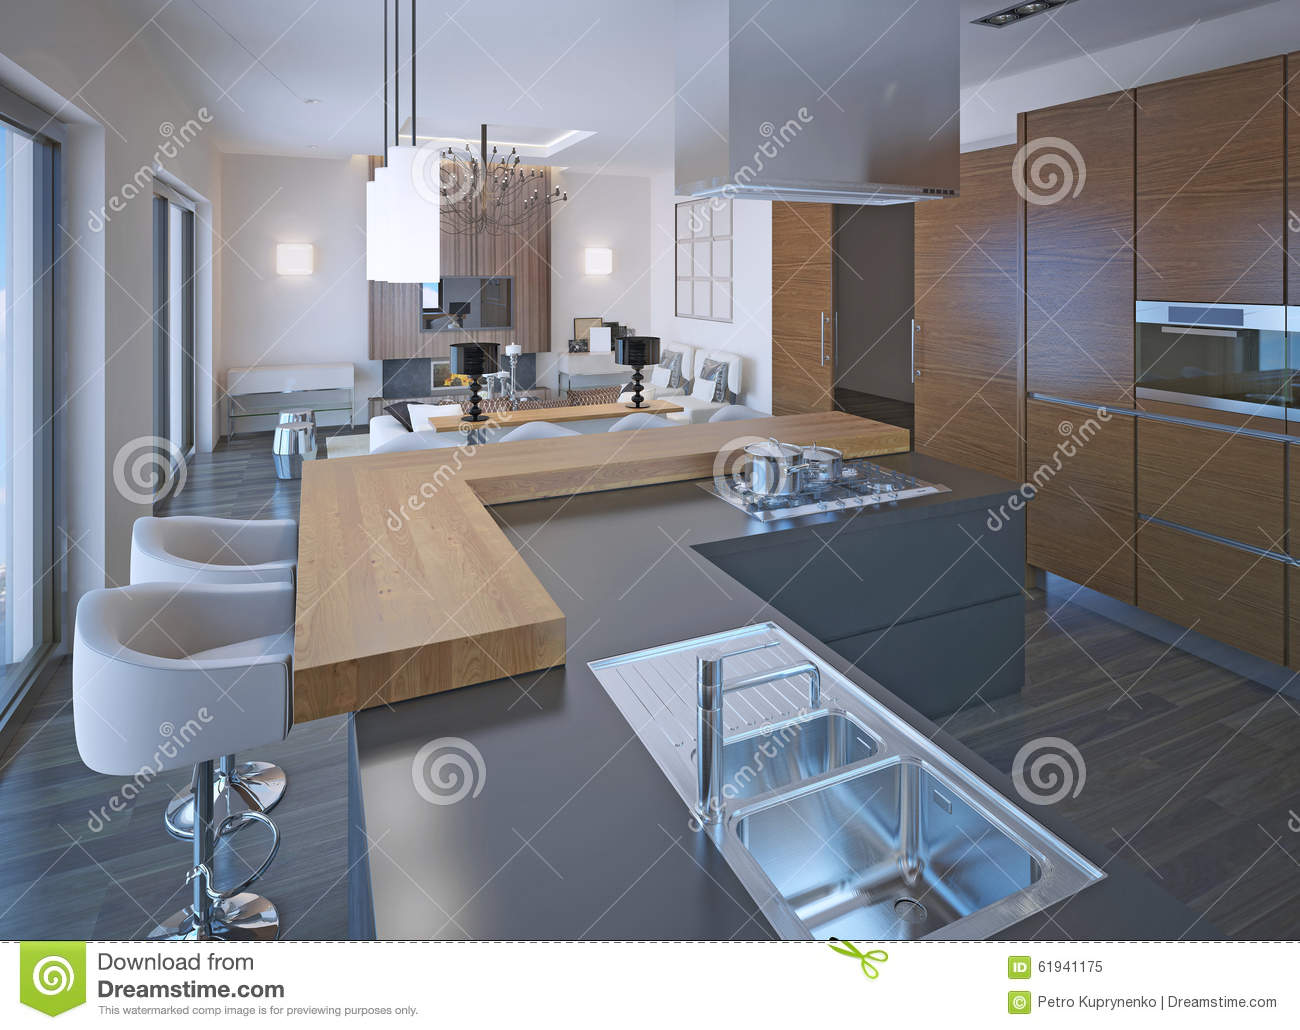 Neoclassical kitchen design stock image cartoondealer for Kitchen designs that stand the test of time